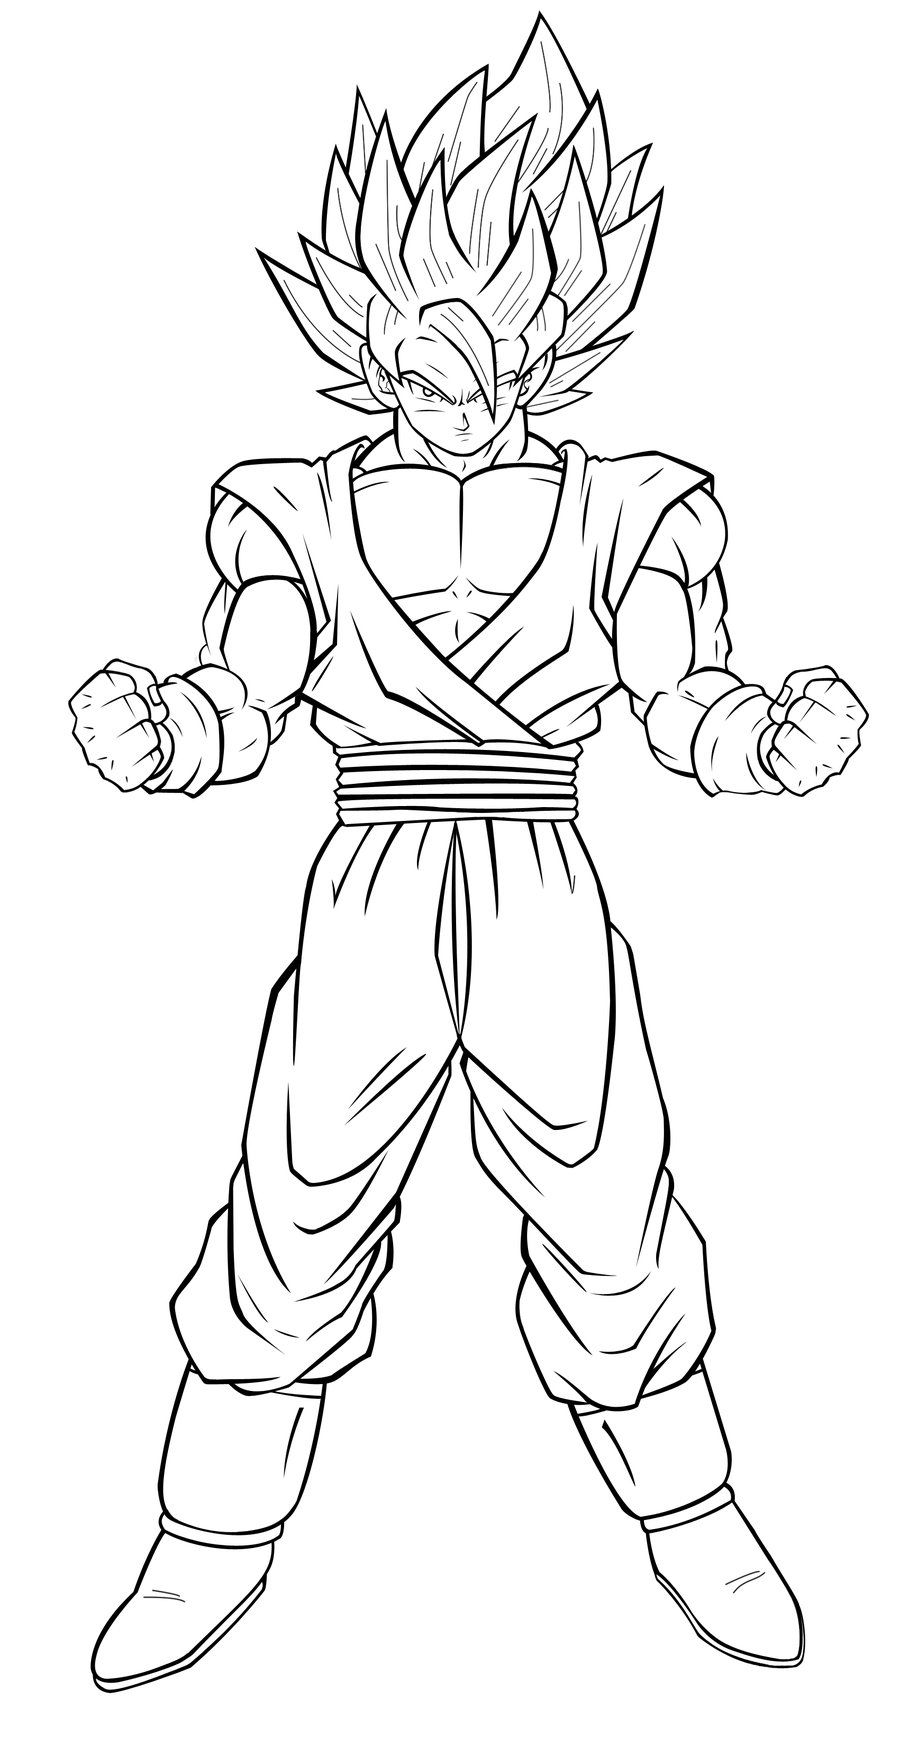 Coloriage dragon ball z sangoku super sayen 3 dragon ball z coloriage dragon ball coloriage - Dessin dragon ball z facile ...